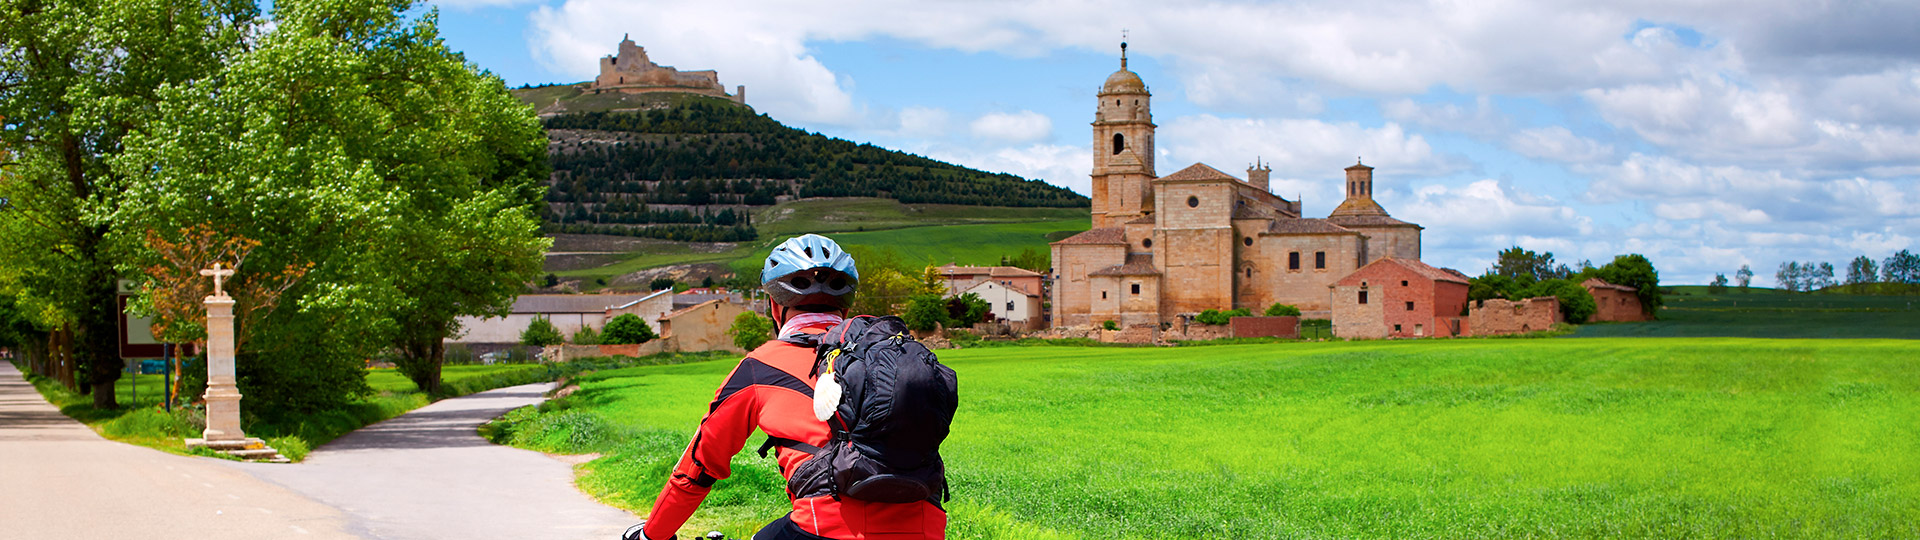 The Xacobeo Holy Year Reasons To Travel The Camino The Way Of St James Spain Info In English